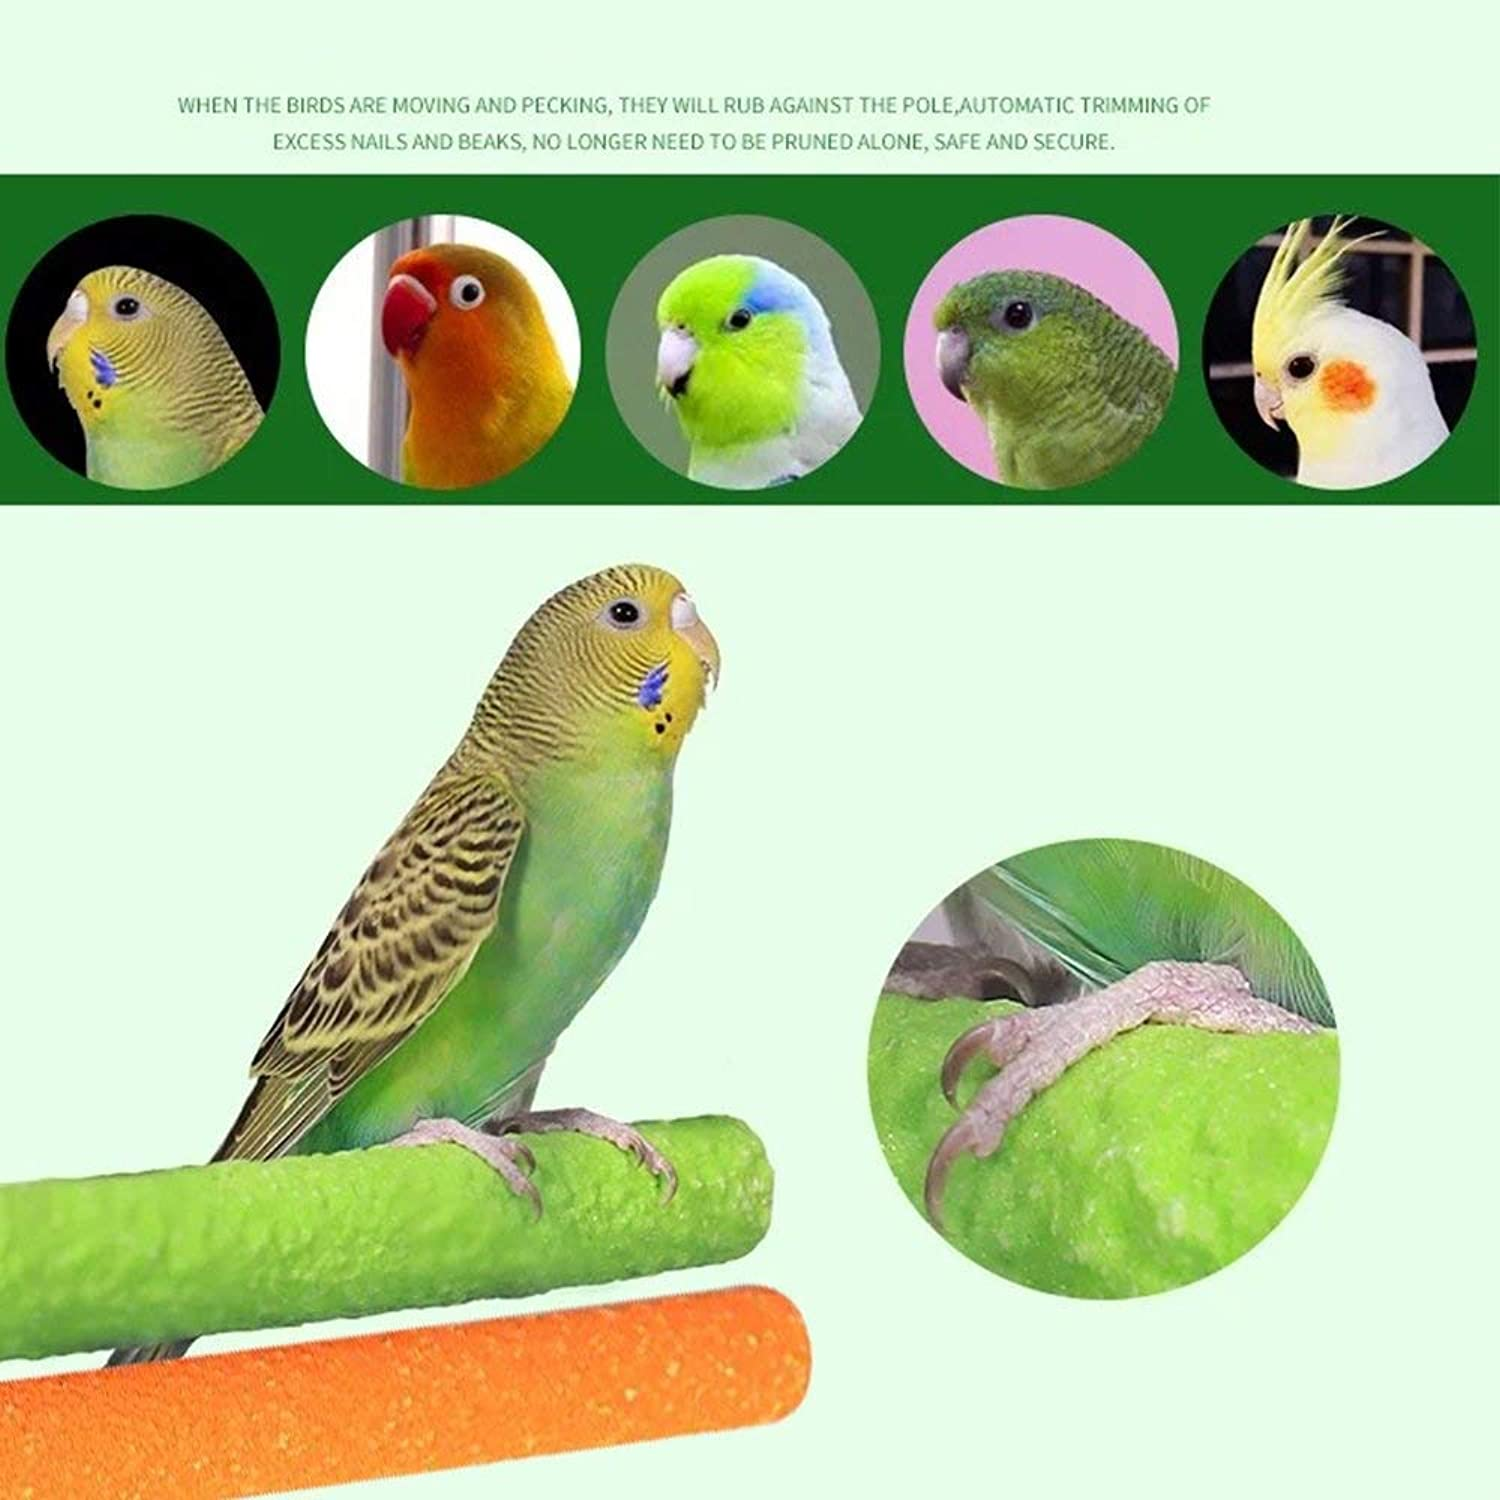 Borange Bird Perch Parred Stand Parakeet Natural Wood Rough Sand Perches Grinding Nail for Small and Medium Cockatoo Cockatiels Conure Bugie Cage Accessories Pack of 2 (20cm 8inch)